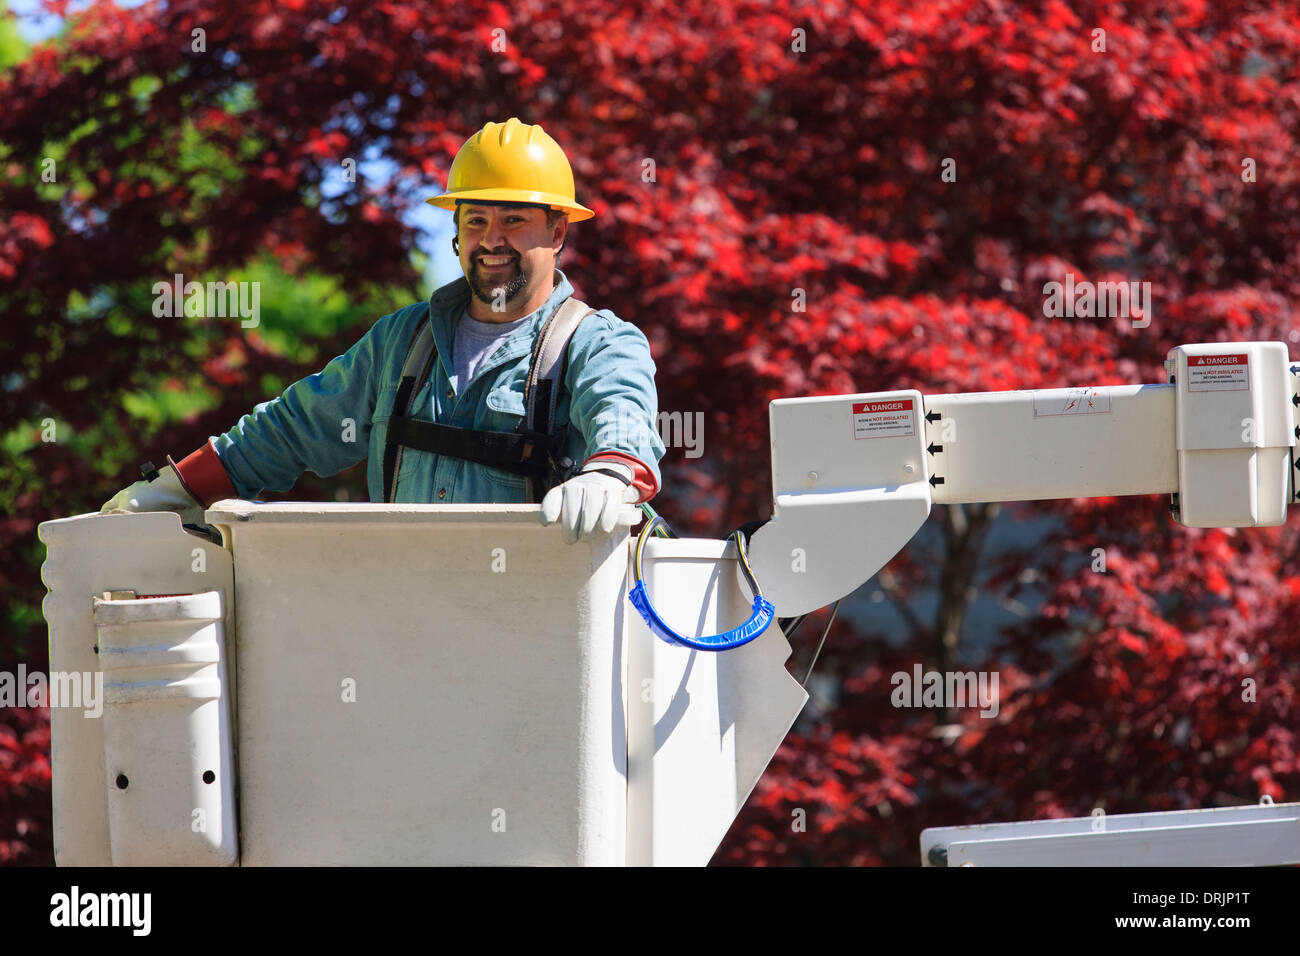 Insulated Stock Photos Images Alamy Cut Engineer Crocodile Safety Steel Genuine Leather Brown Power In Lift Bucket Wearing A Harness And Gloves Braintree Massachusetts